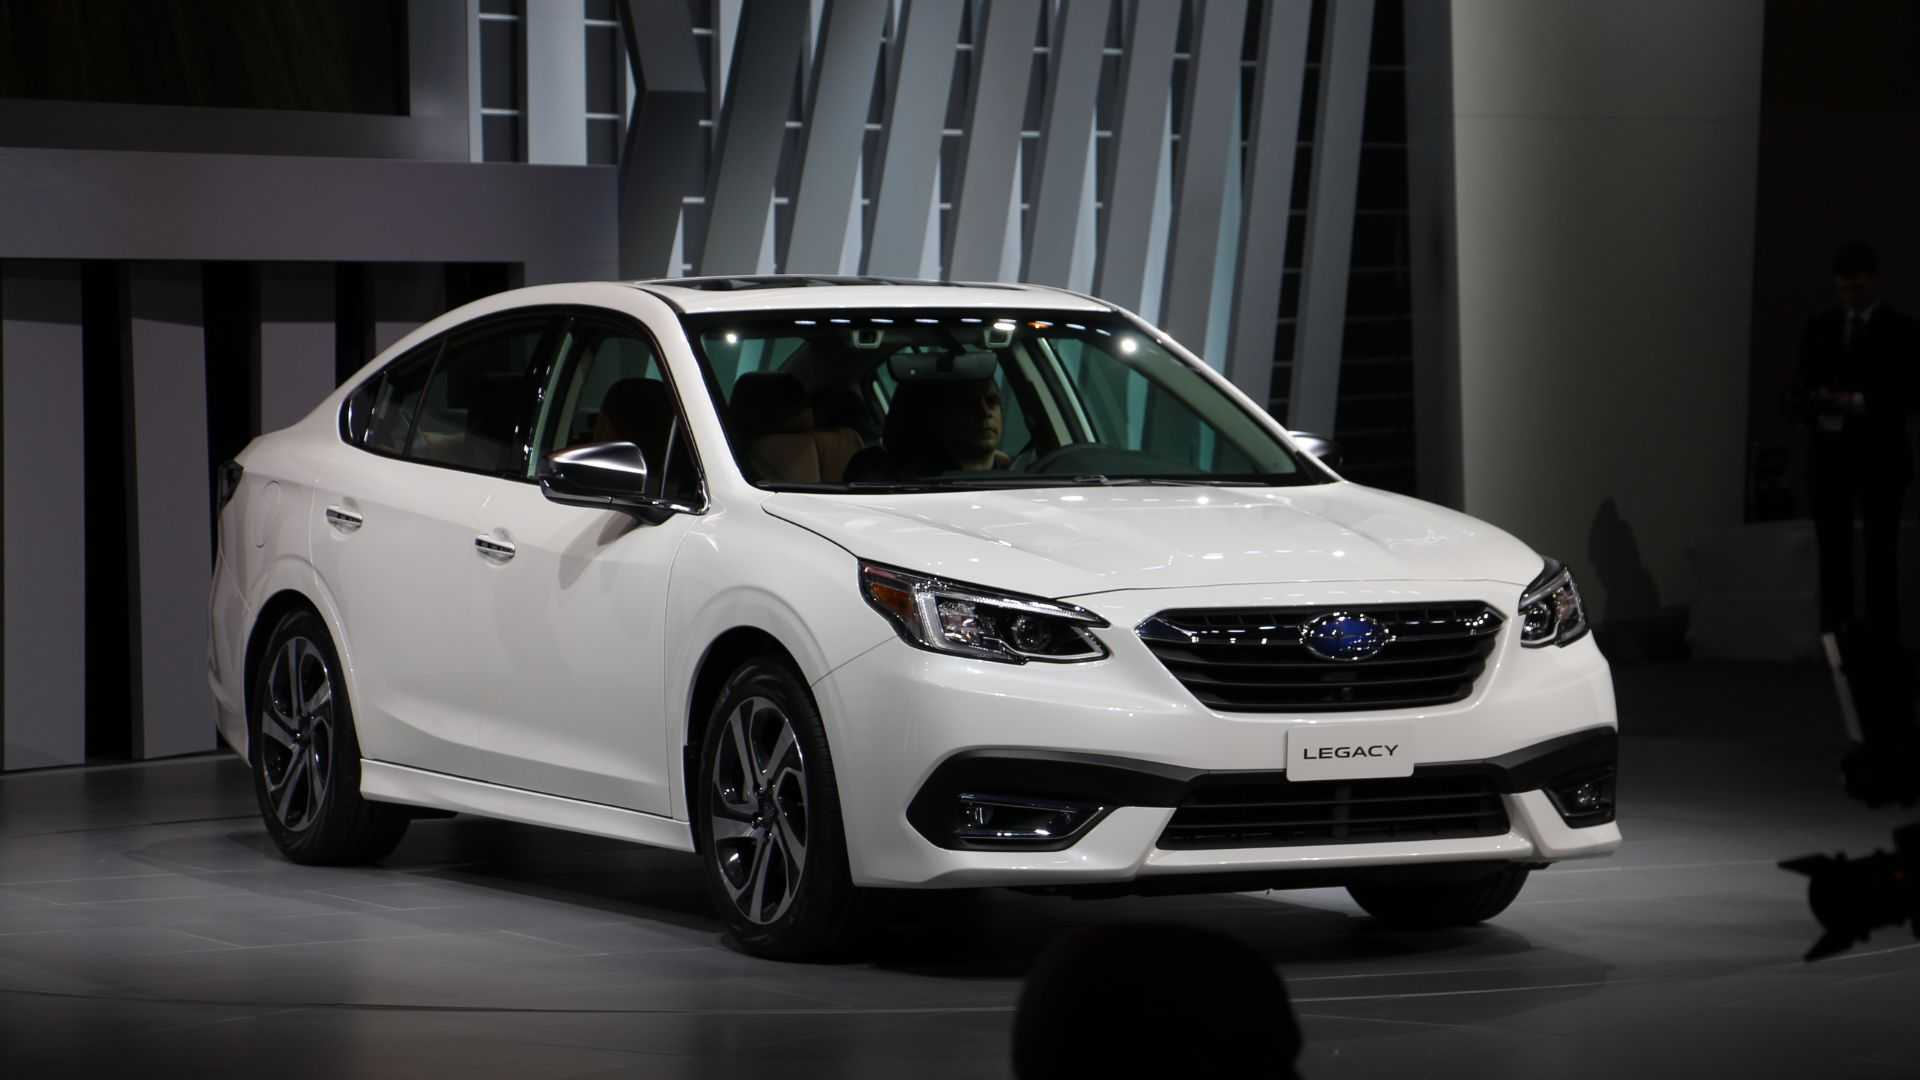 96 The Best Subaru New Legacy 2020 Engine